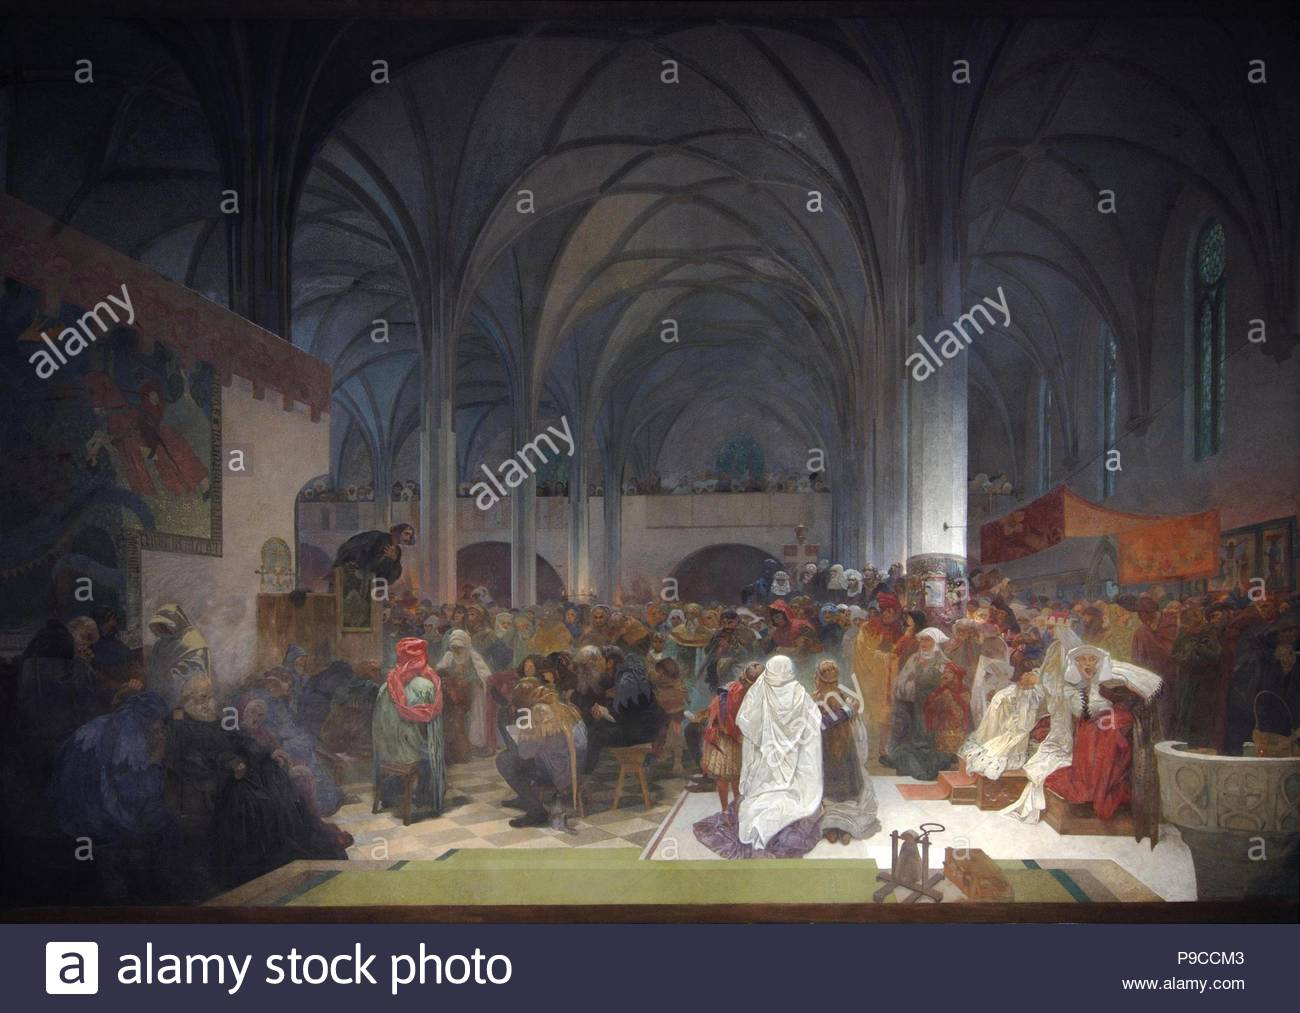 Master Jan Hus Preaching at the Bethlehem Chapel (The cycle The Slav Epic). Museum: City Gallery Prague. - Stock Image